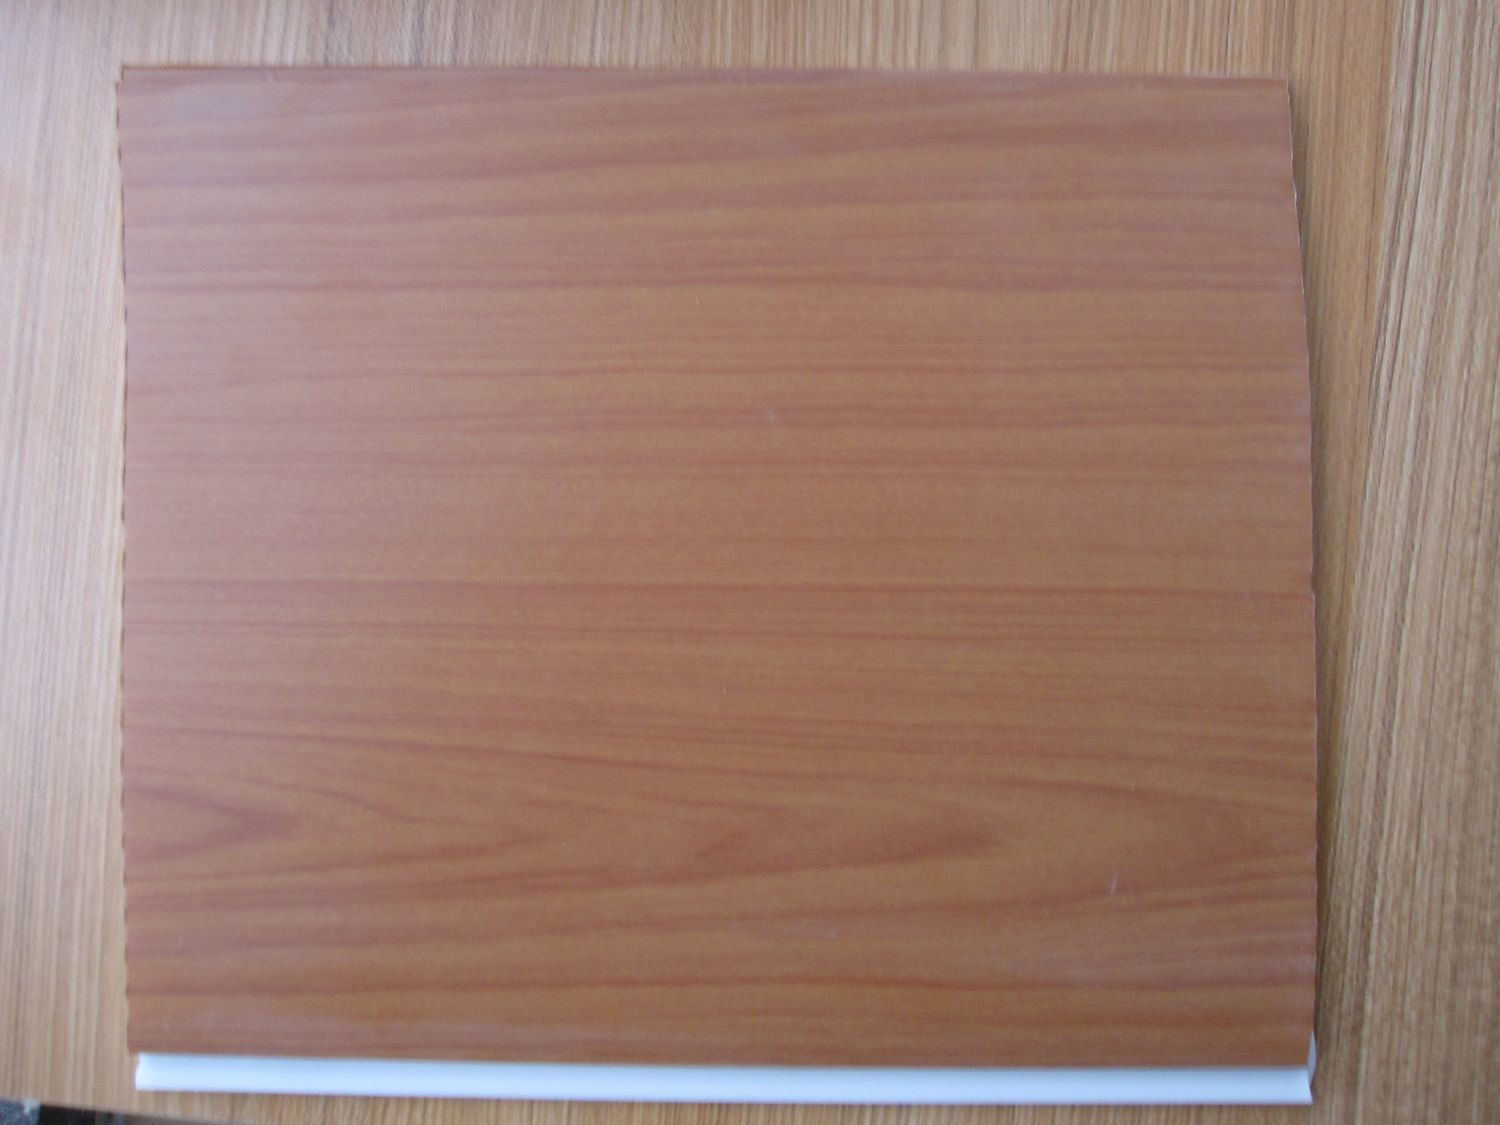 Pvc Wall Design Images : China wooden design pvc wall panel photos pictures